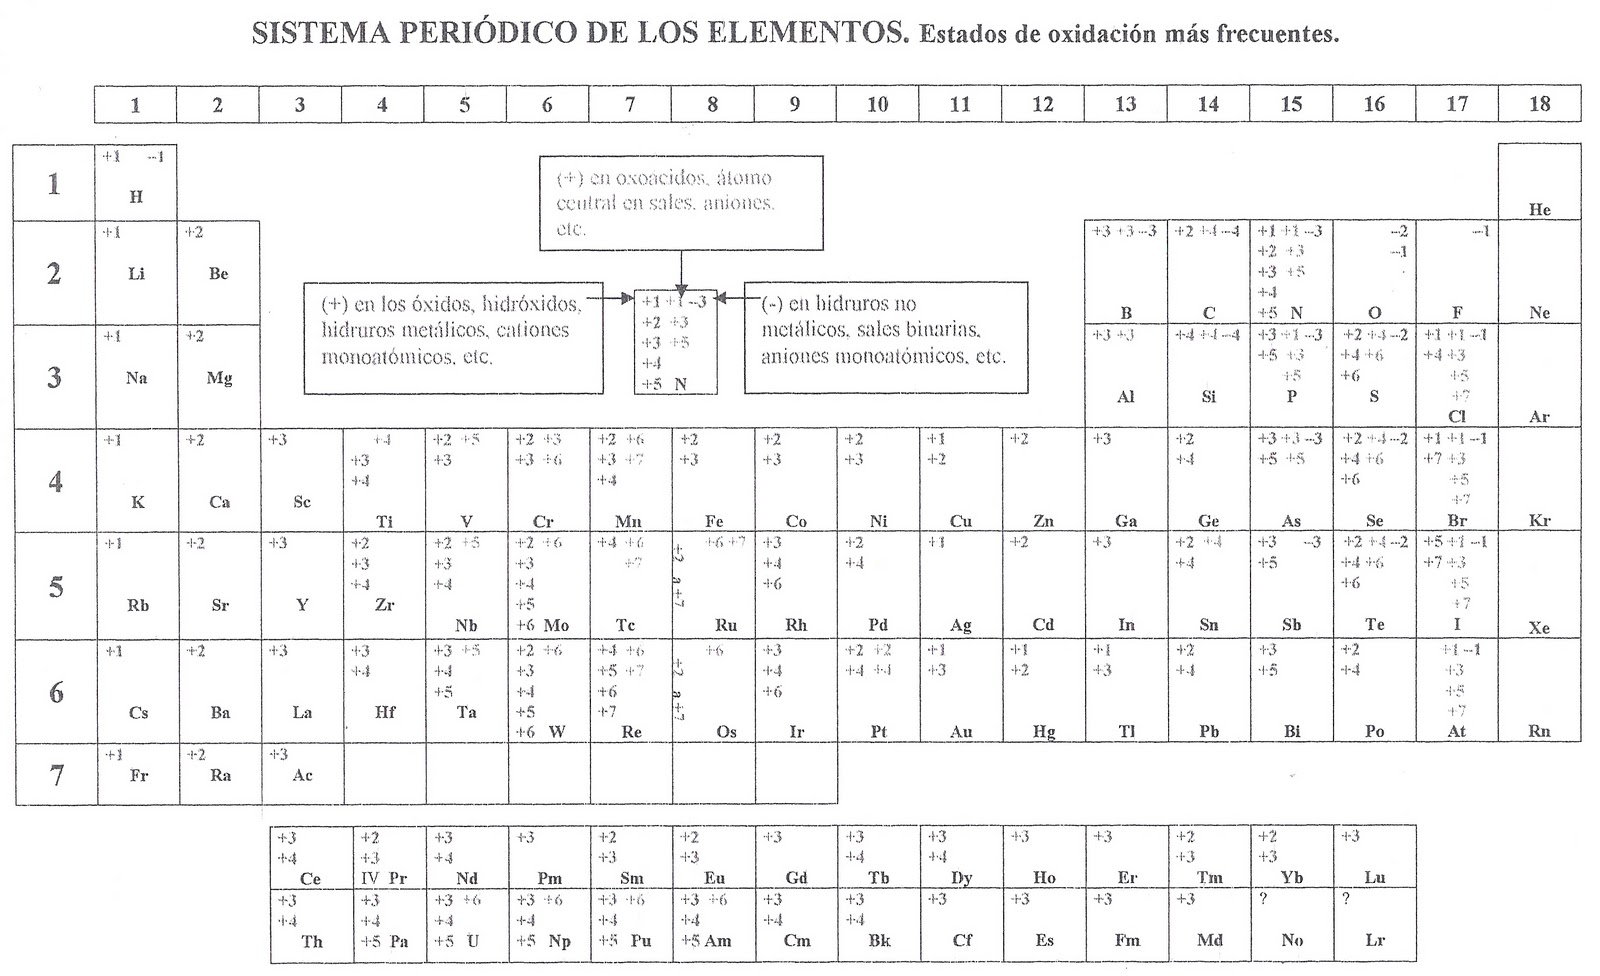 Tabla periodica delos elementos quimicos valencias gallery tabla periodica las valencias choice image periodic table and tabla periodica delos elementos quimicos valencias image urtaz Image collections